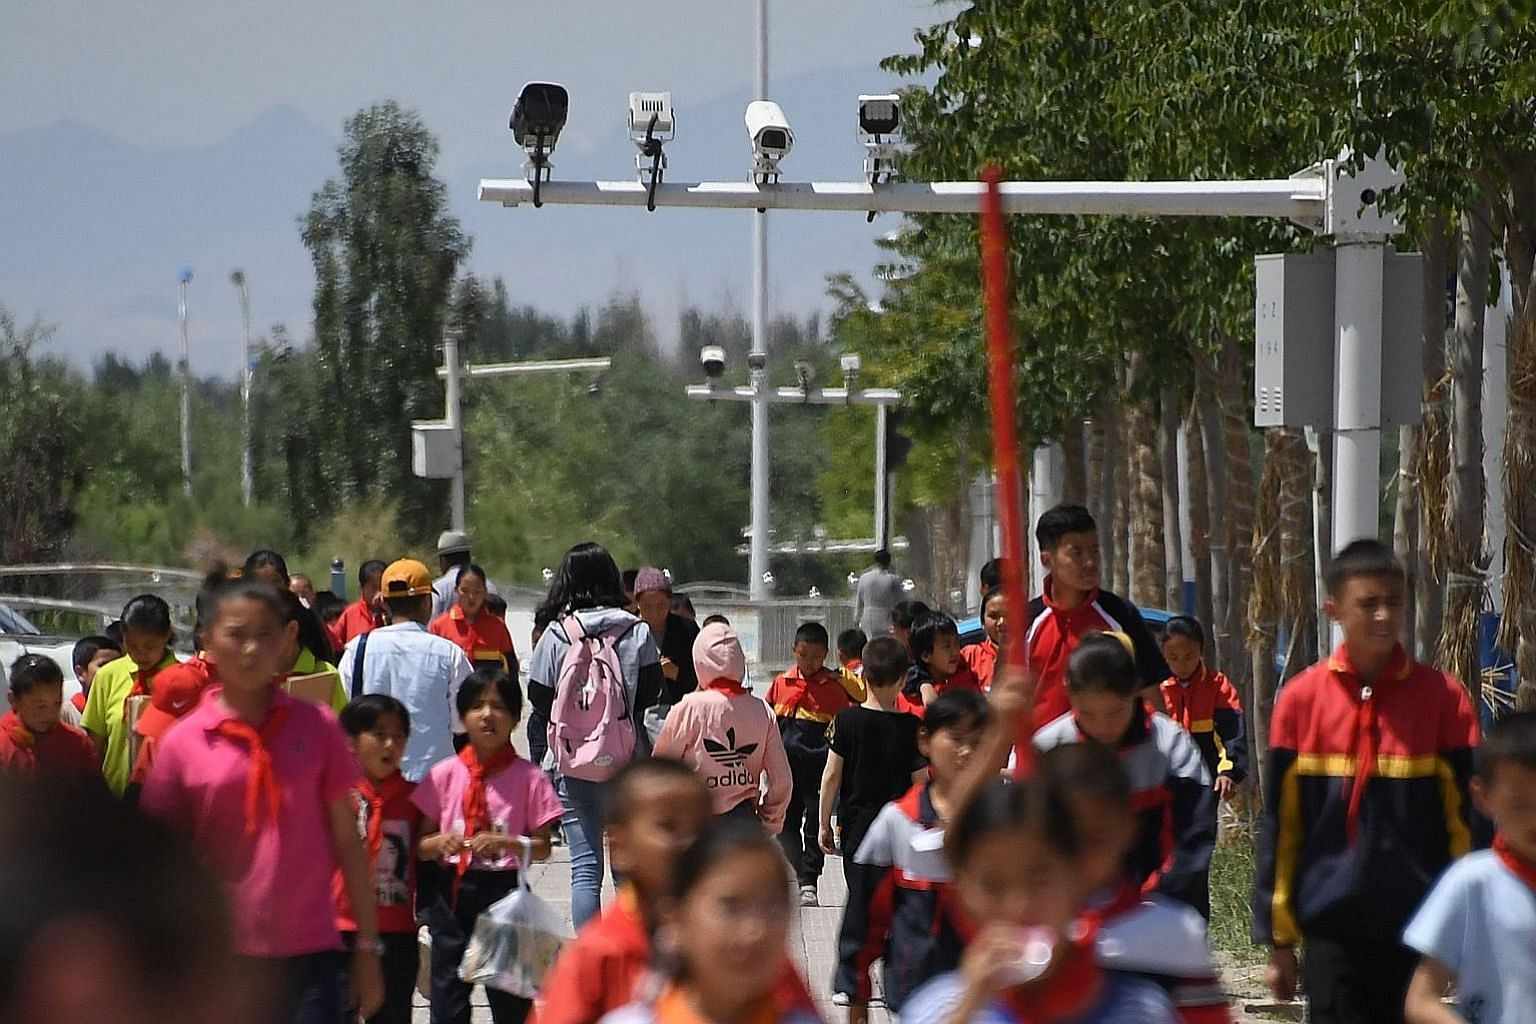 Schoolchildren walking below surveillance cameras in Akto, in China's western Xinjiang region. In China, surveillance is becoming pervasive, and algorithms score citizens on their behaviour. The writer says it has been argued that if the West enacts